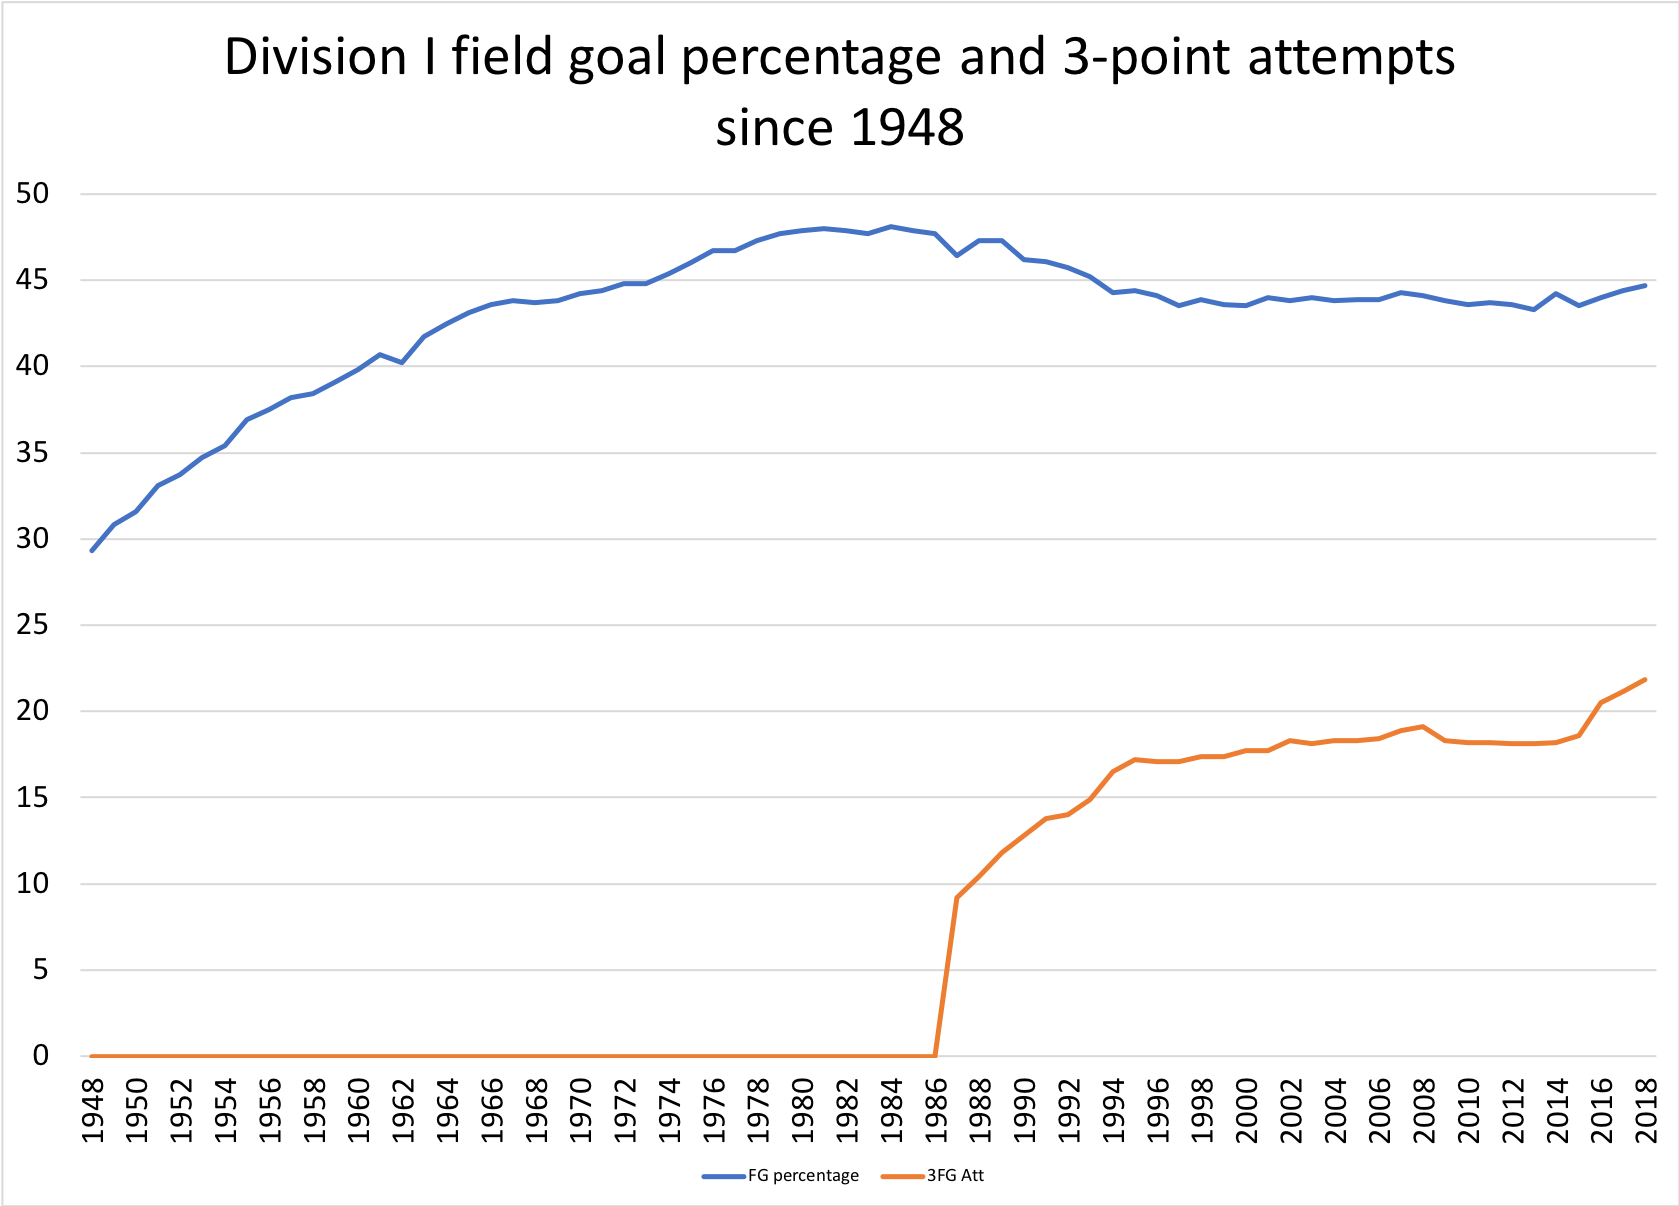 Division I field goal percentage and 3-point attempts since 1948